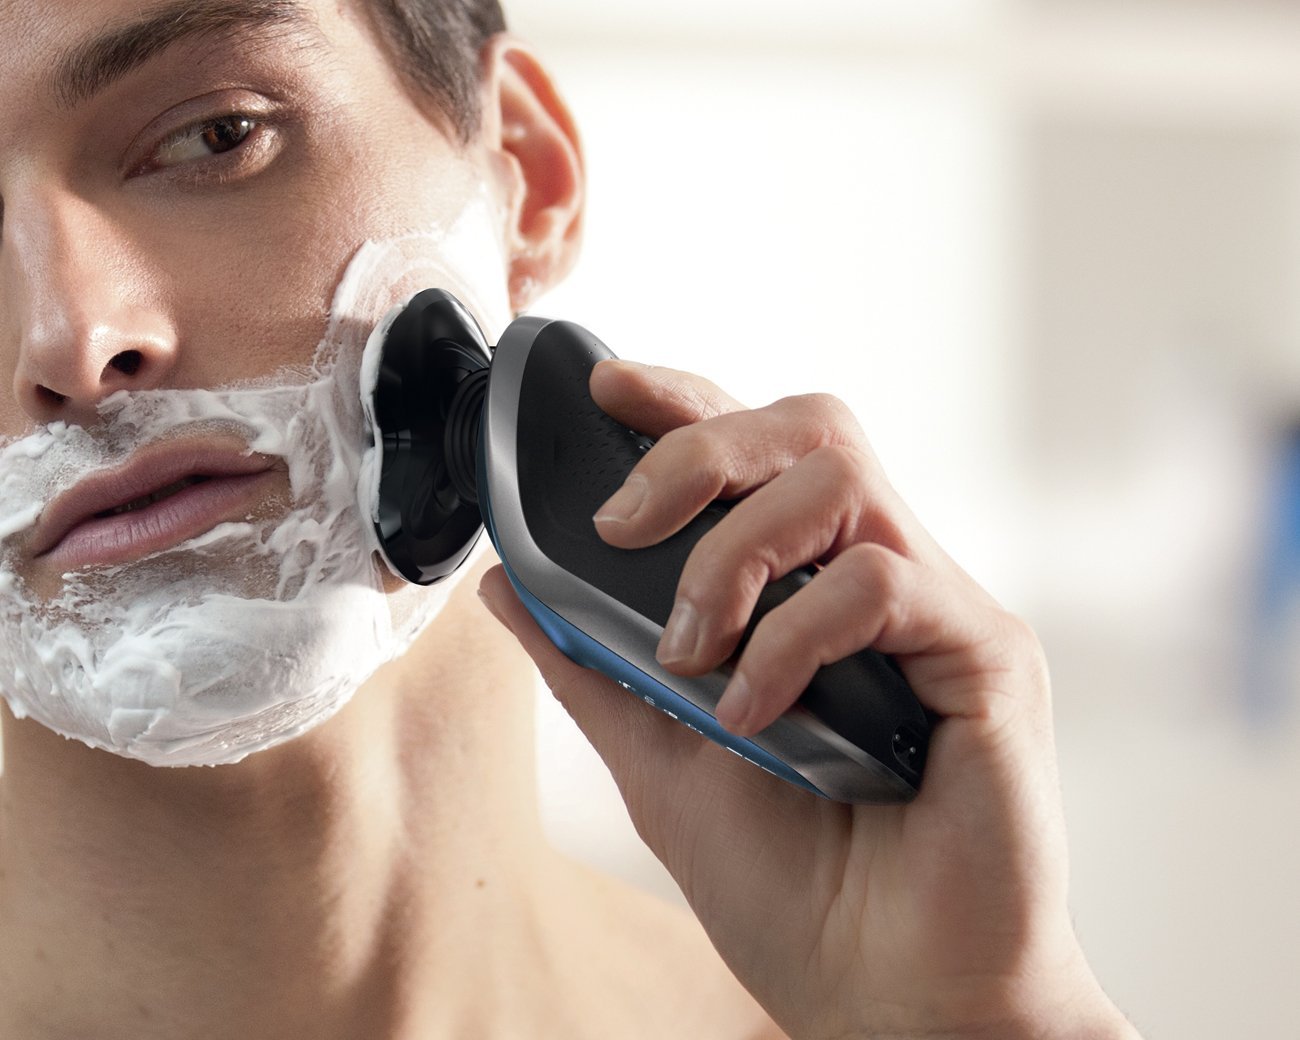 Philips Norelco Electric Shaver 8900, Wet & Dry Edition S8950/91 by Philips Norelco (Image #3)